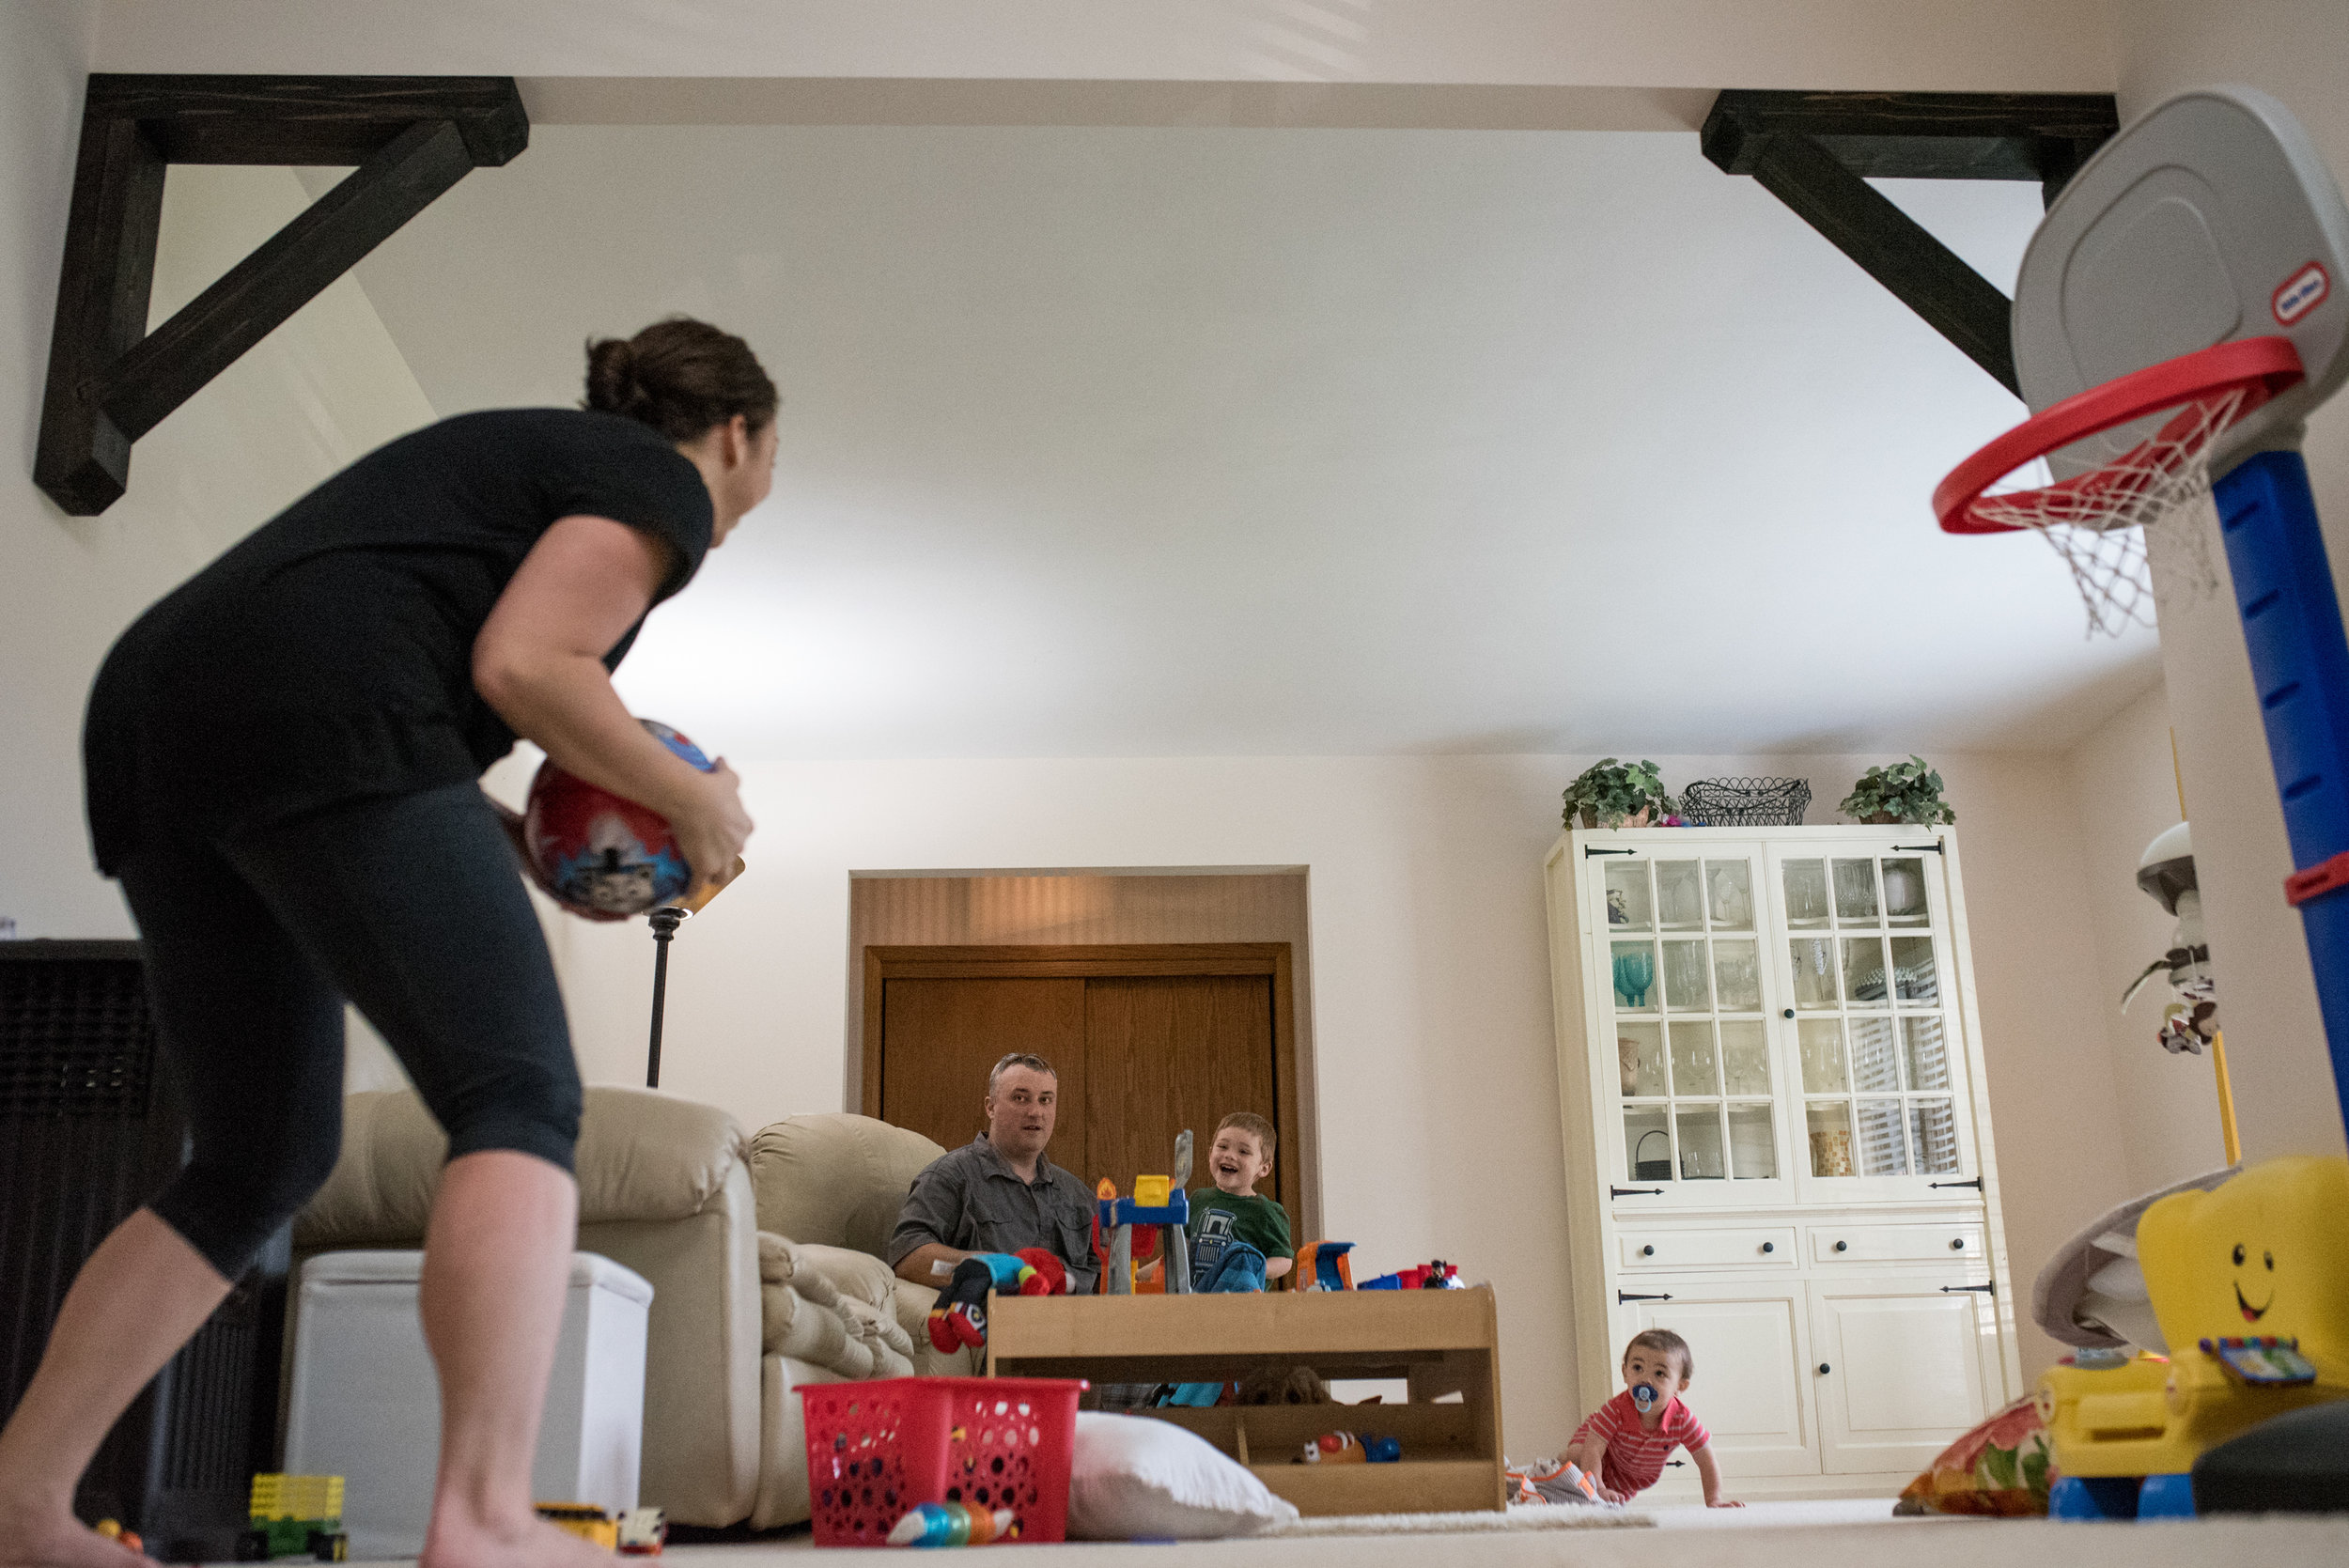 Mom playing basketball in living room while husband and two sons watch